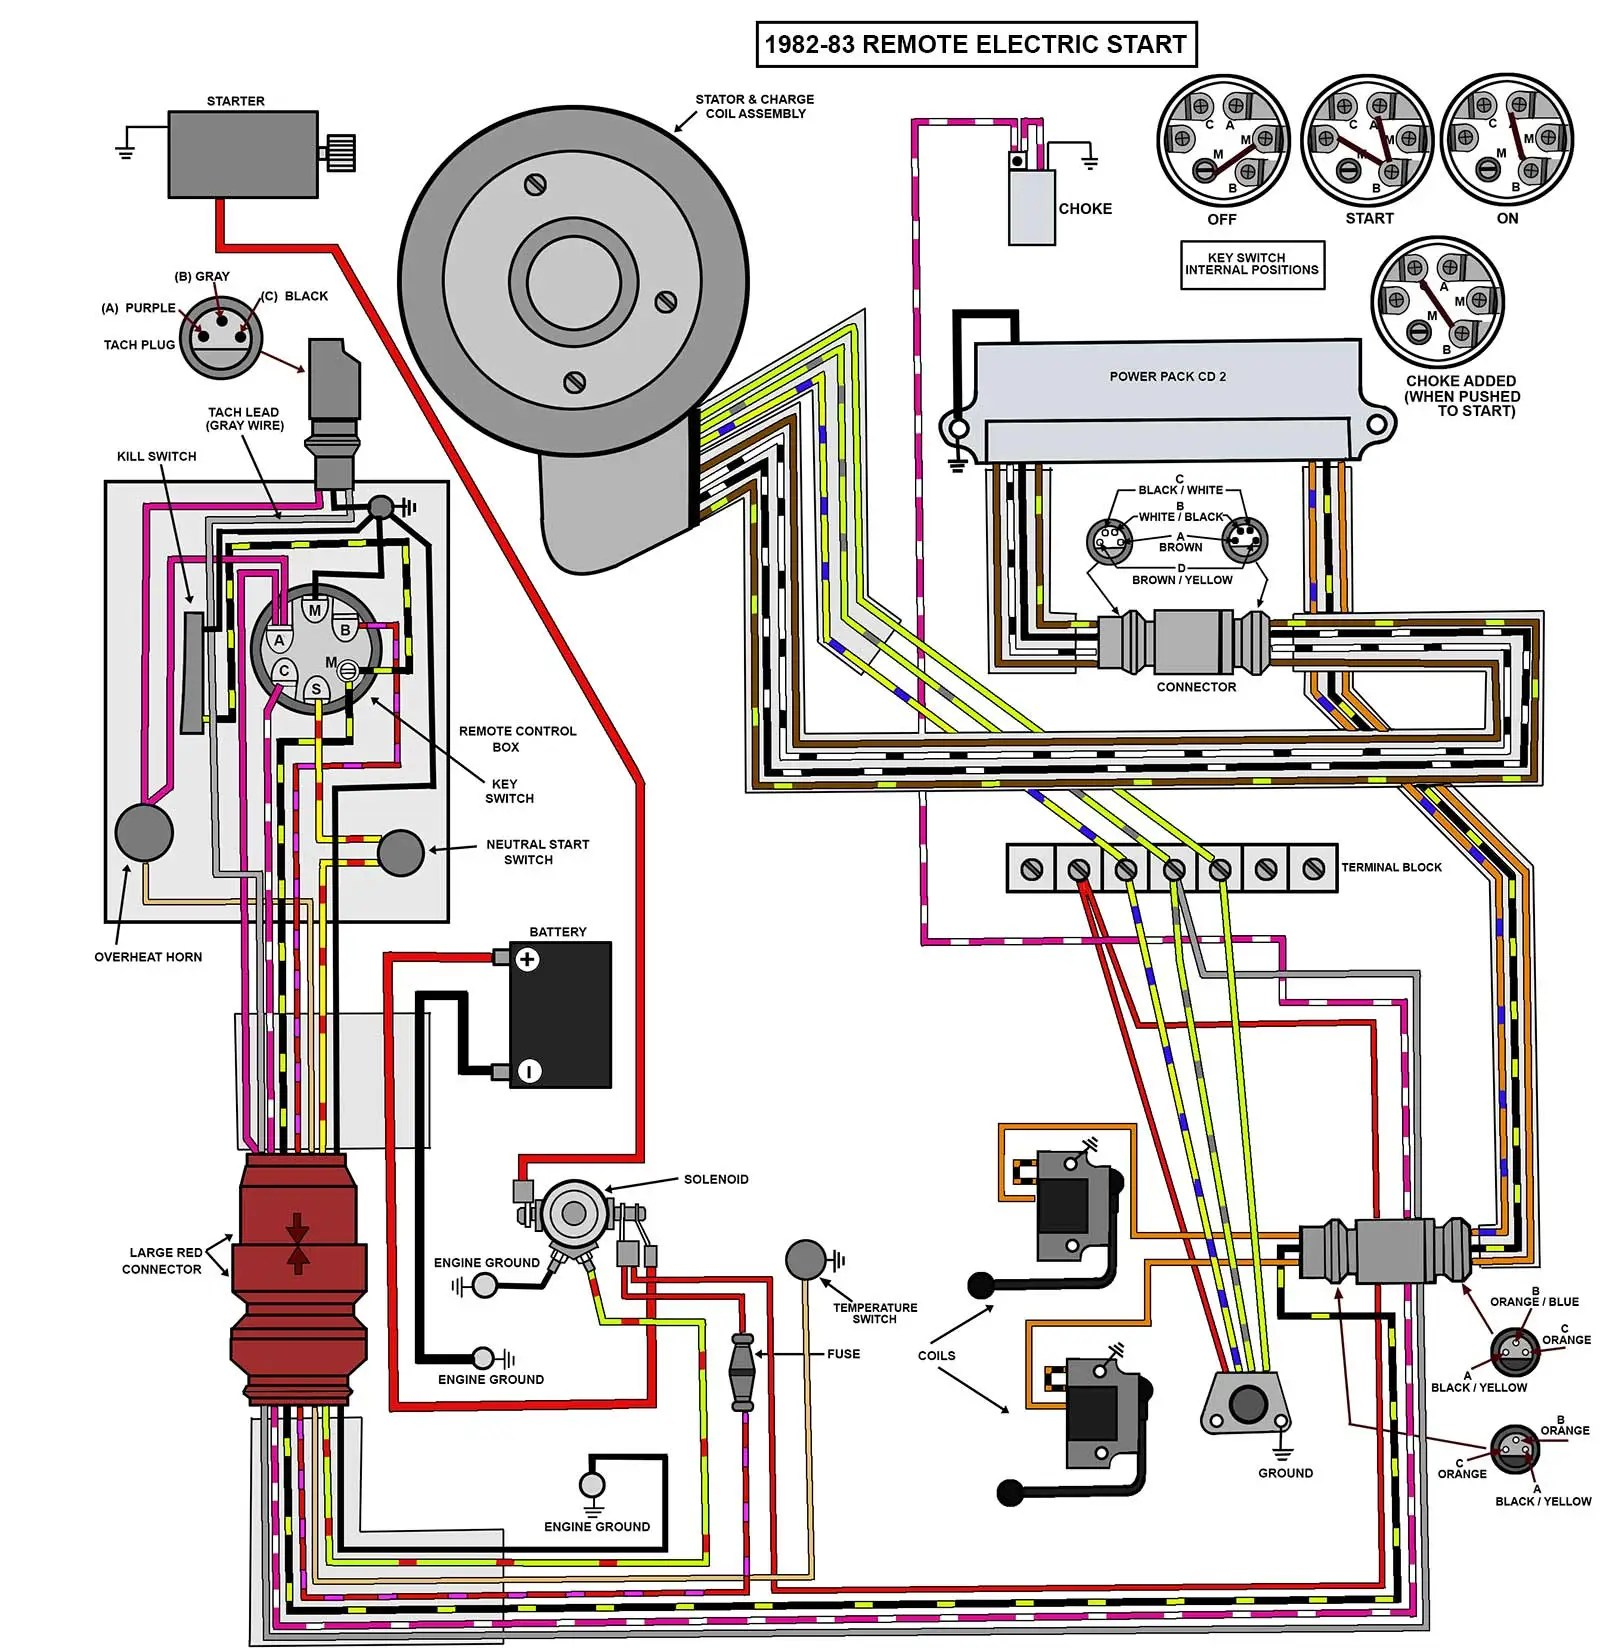 hight resolution of 1976 johnson outboard ignition switch diagram wiring wiring 1976 johnson outboard ignition switch diagram wiring